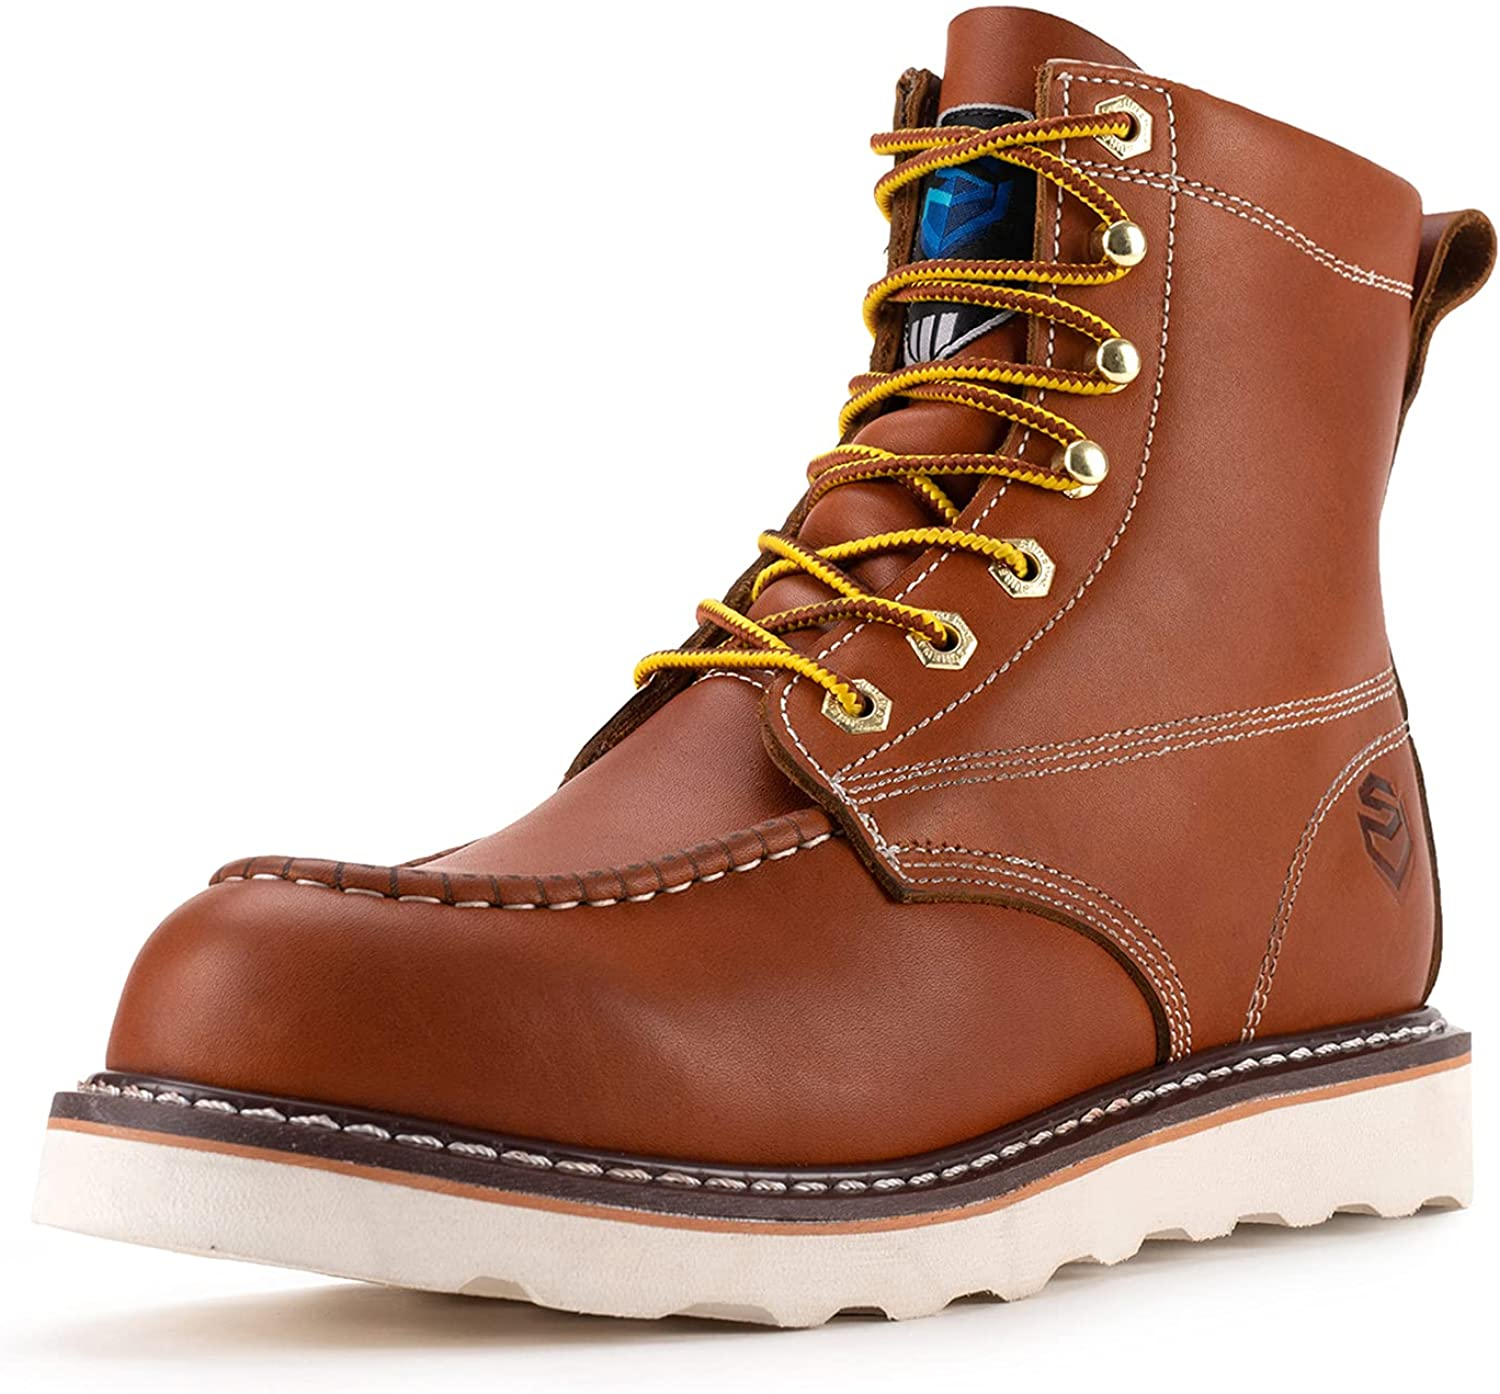 SUREWAY Work Boots for Men Beauty products Year-end annual account Soft Wedge Cl Sole Toe Lightweight 6